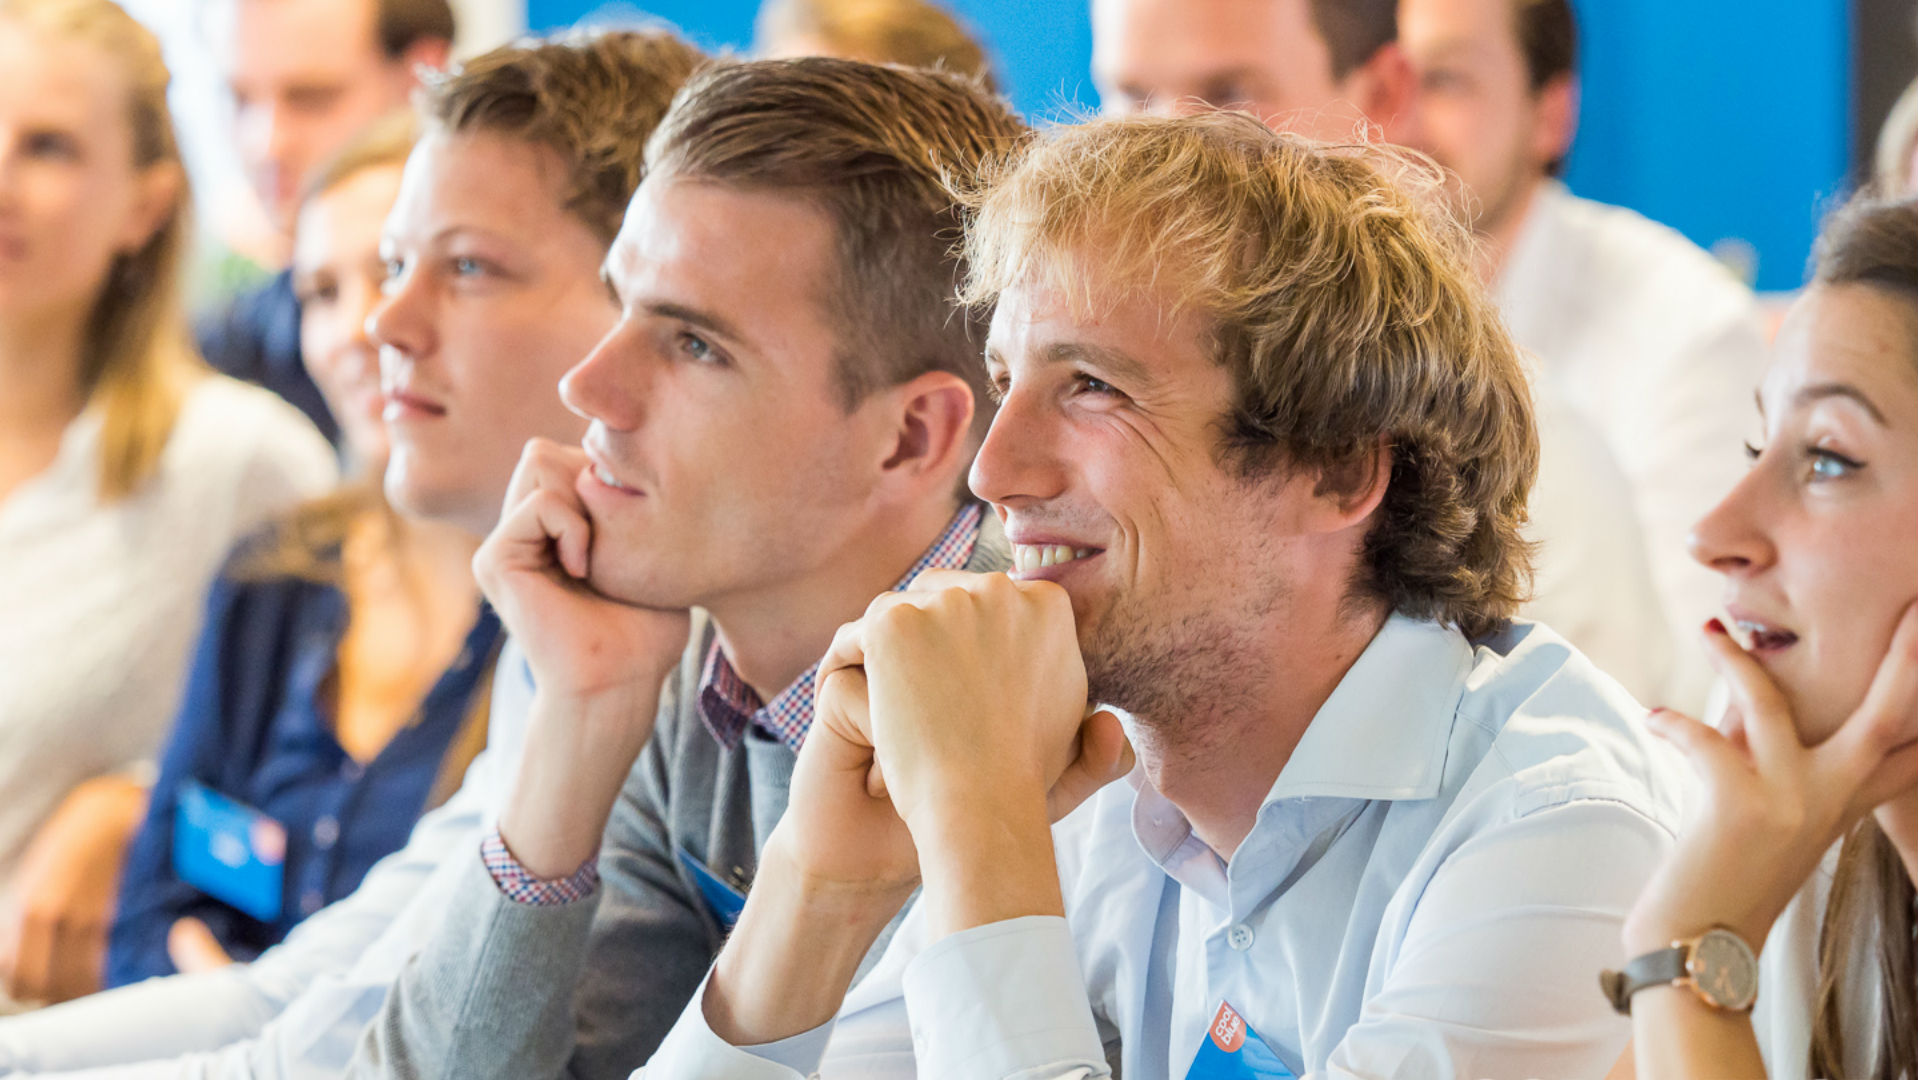 De allereerste Coolblue E-commerce Masterclass